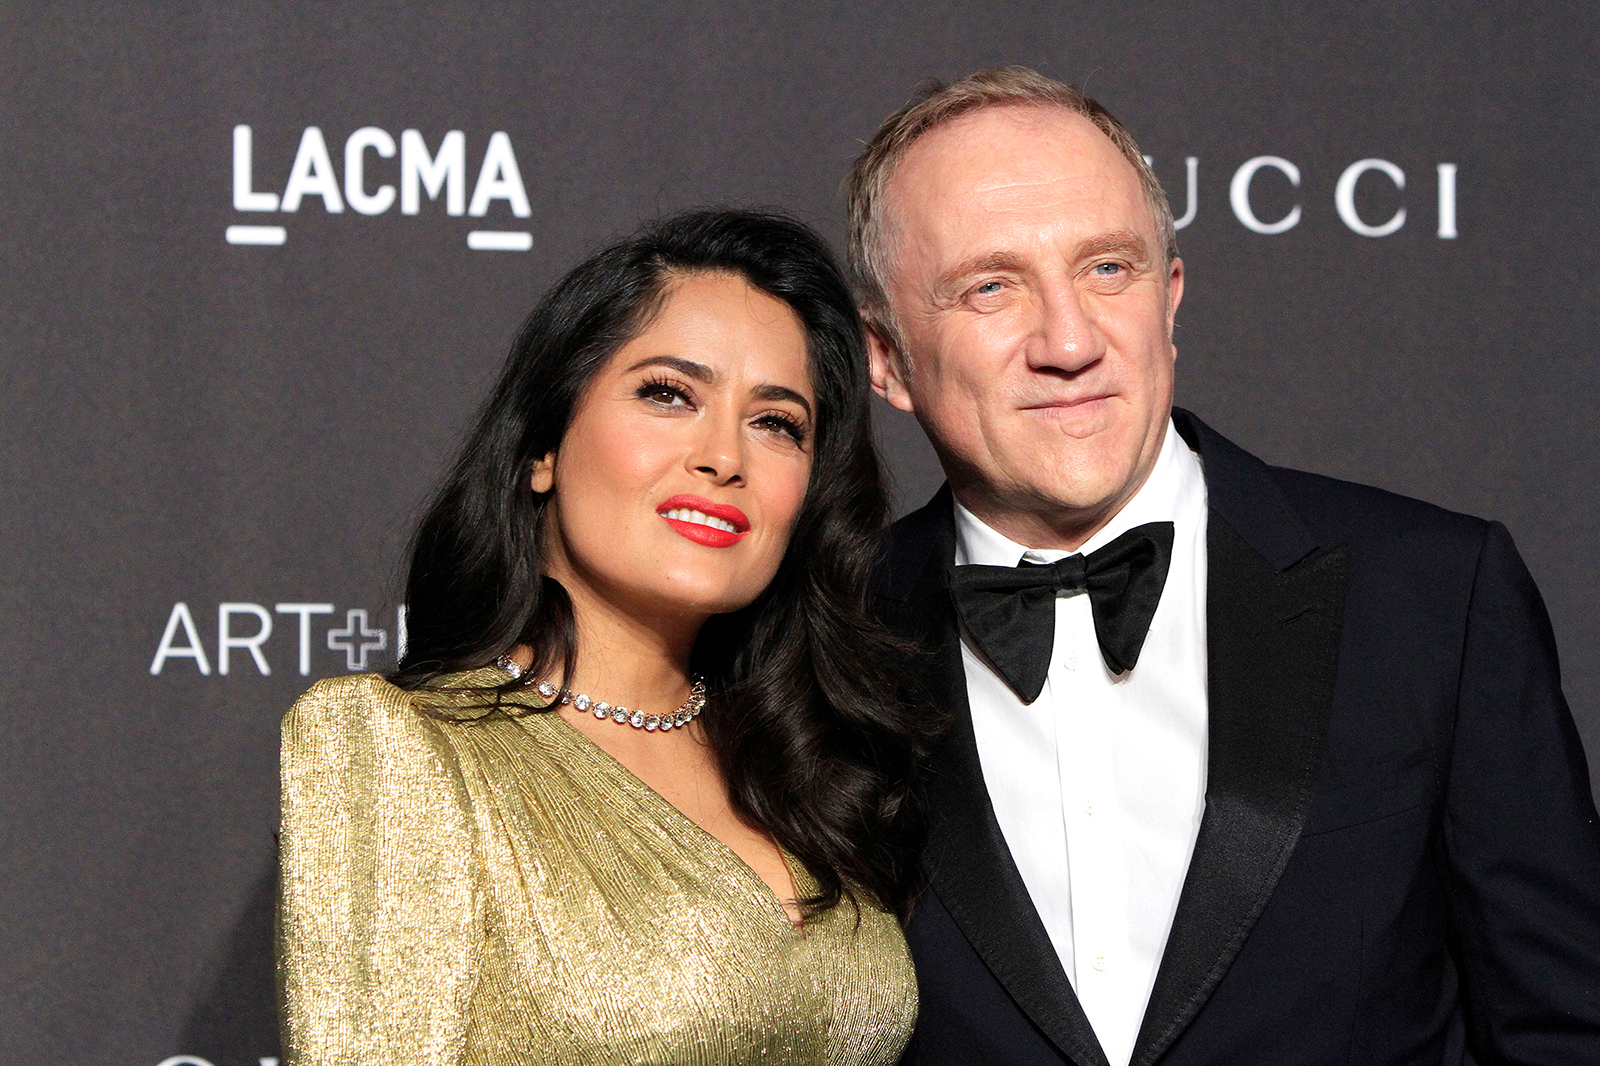 https://www.thesun.co.uk/tvandshowbiz/8881423/salma-hayek-husband-linda-evangelista-pregnant-notre-dame/